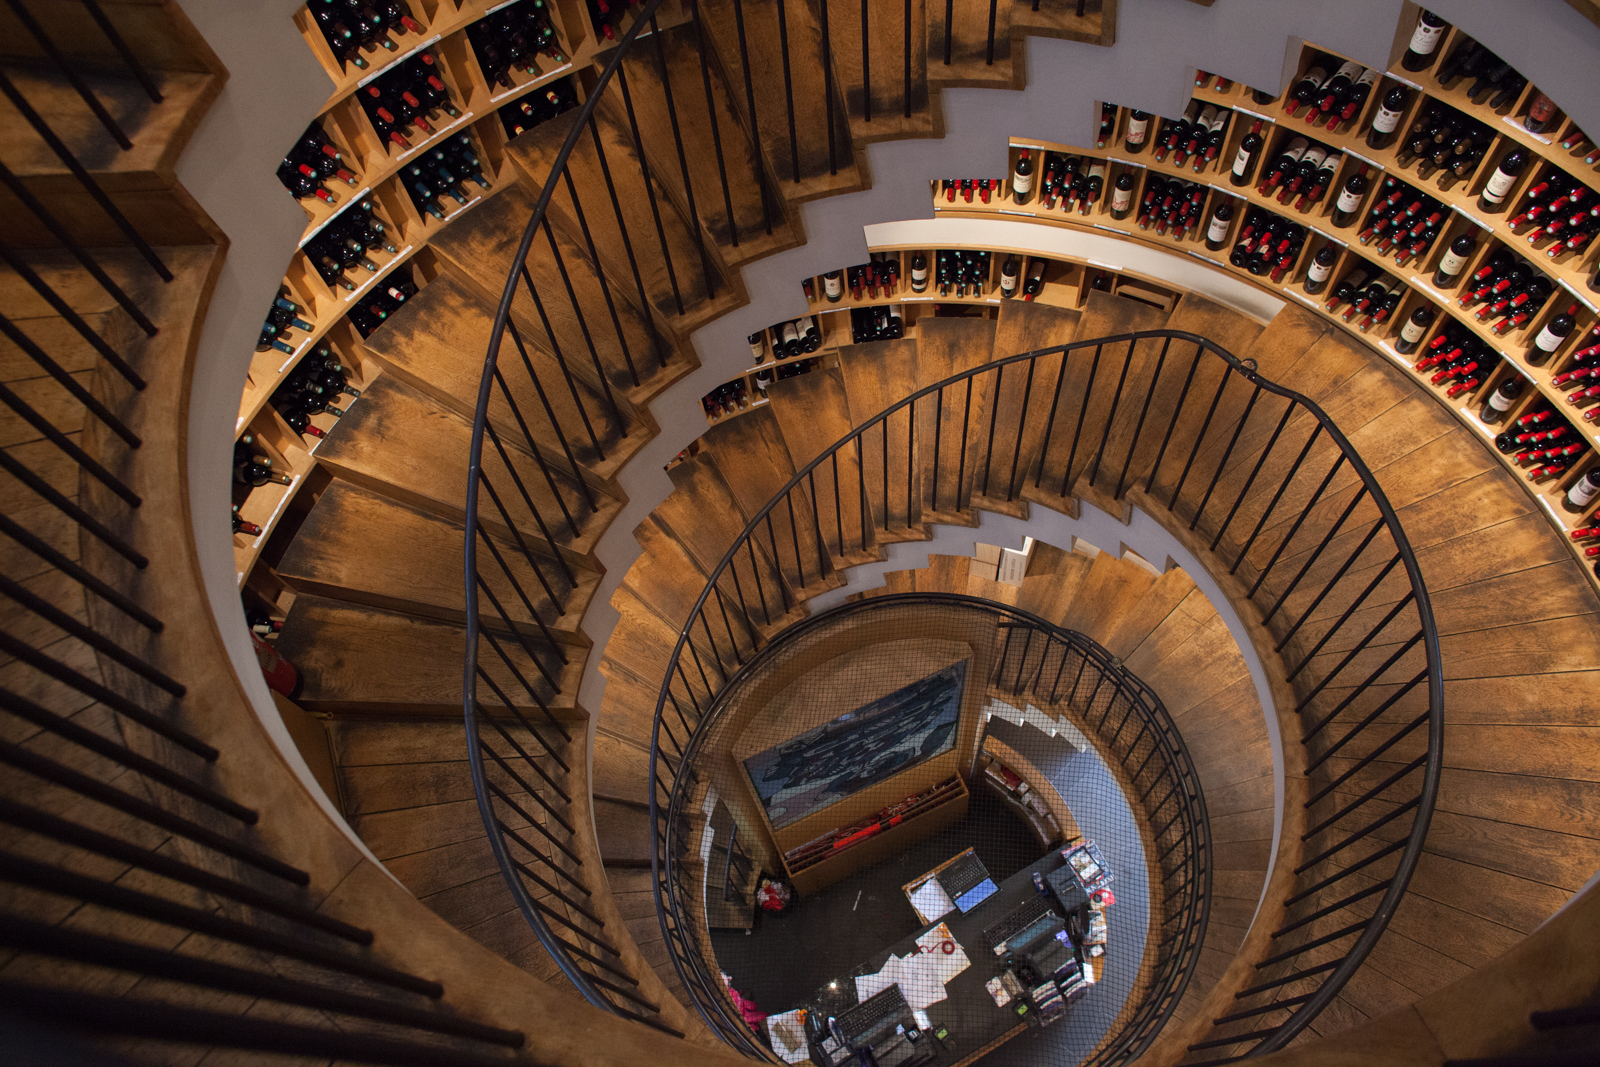 L'Intendant wine shop in Bordeaux, France. ©Kevin Day / Opening a Bottle